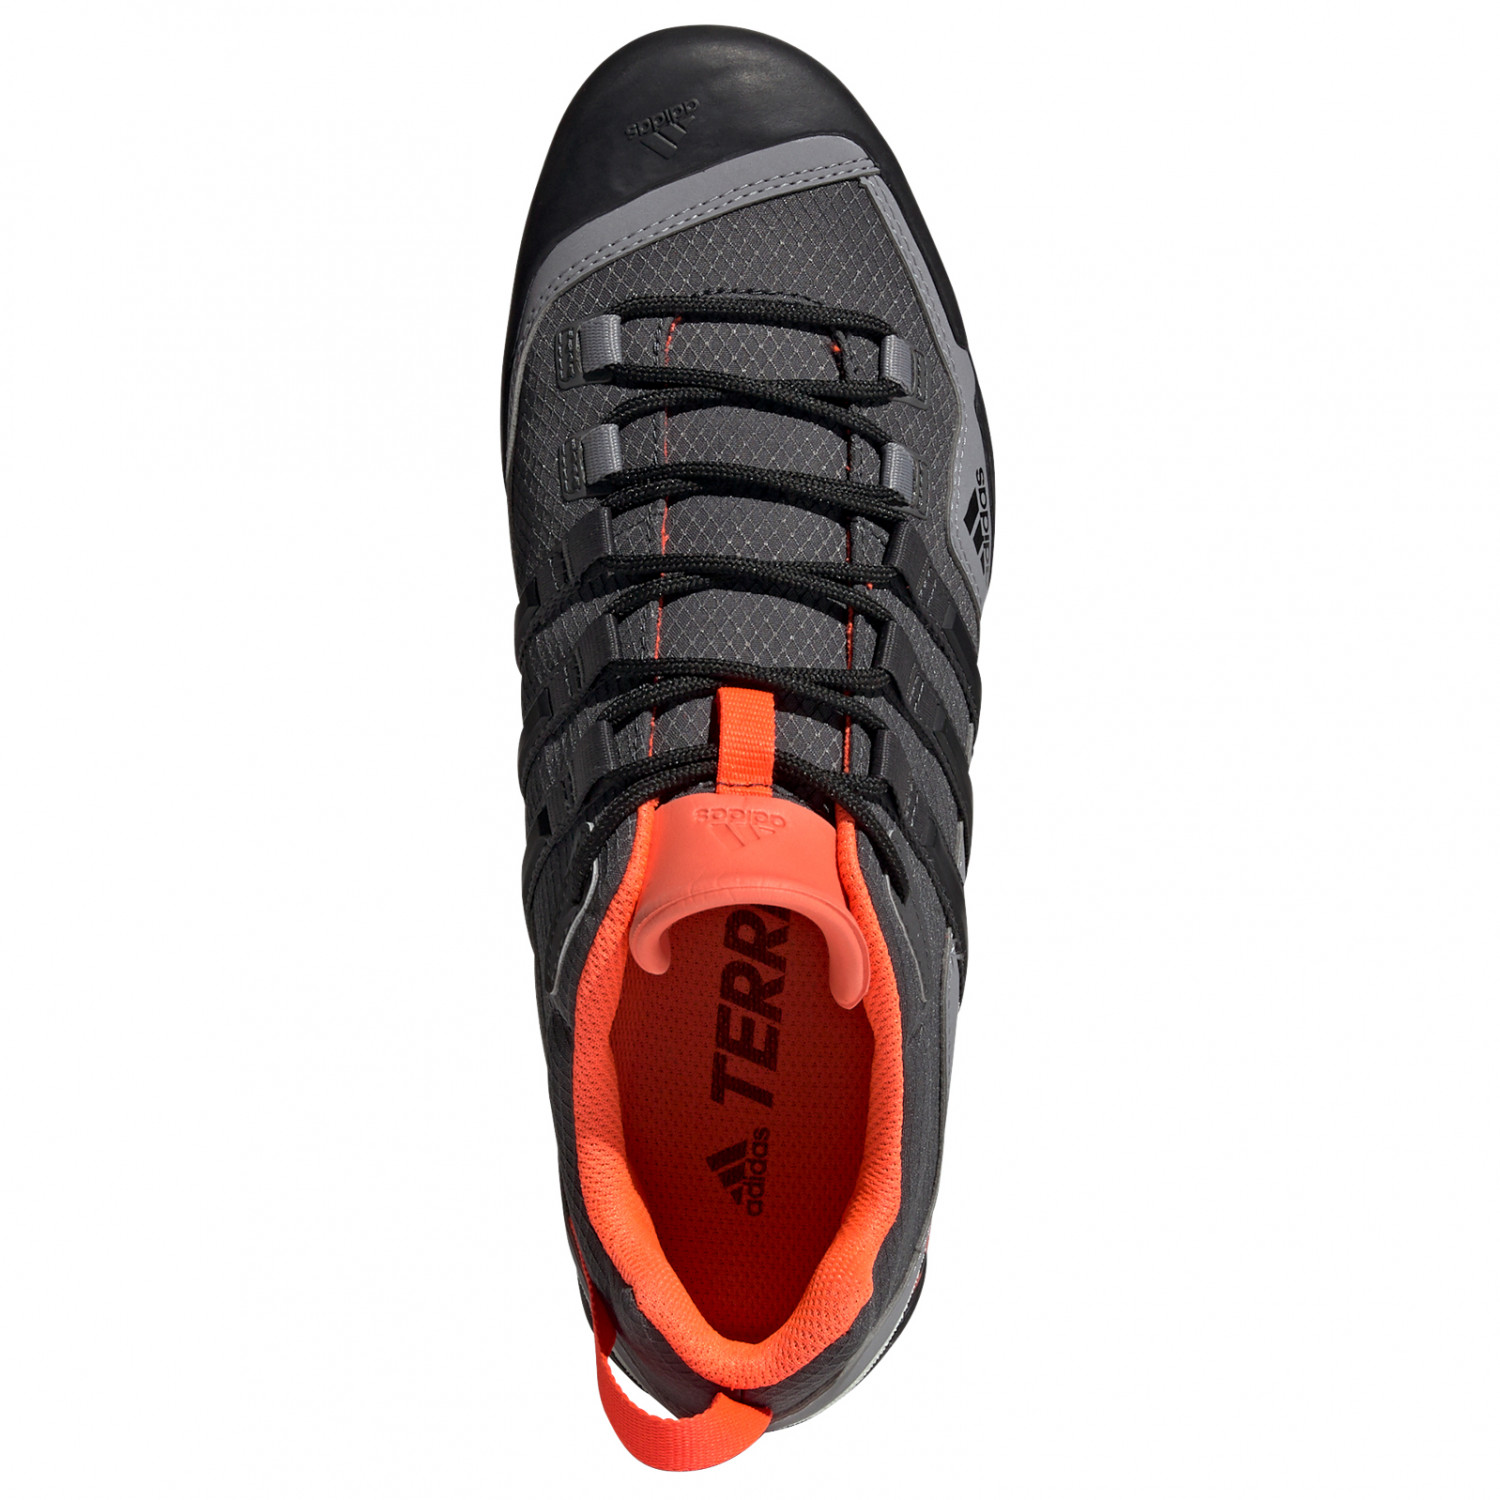 Swift Navy Black Solo Collegiate D'approche Adidas Chaussures Terrex Core Blue8uk rBoxdCe